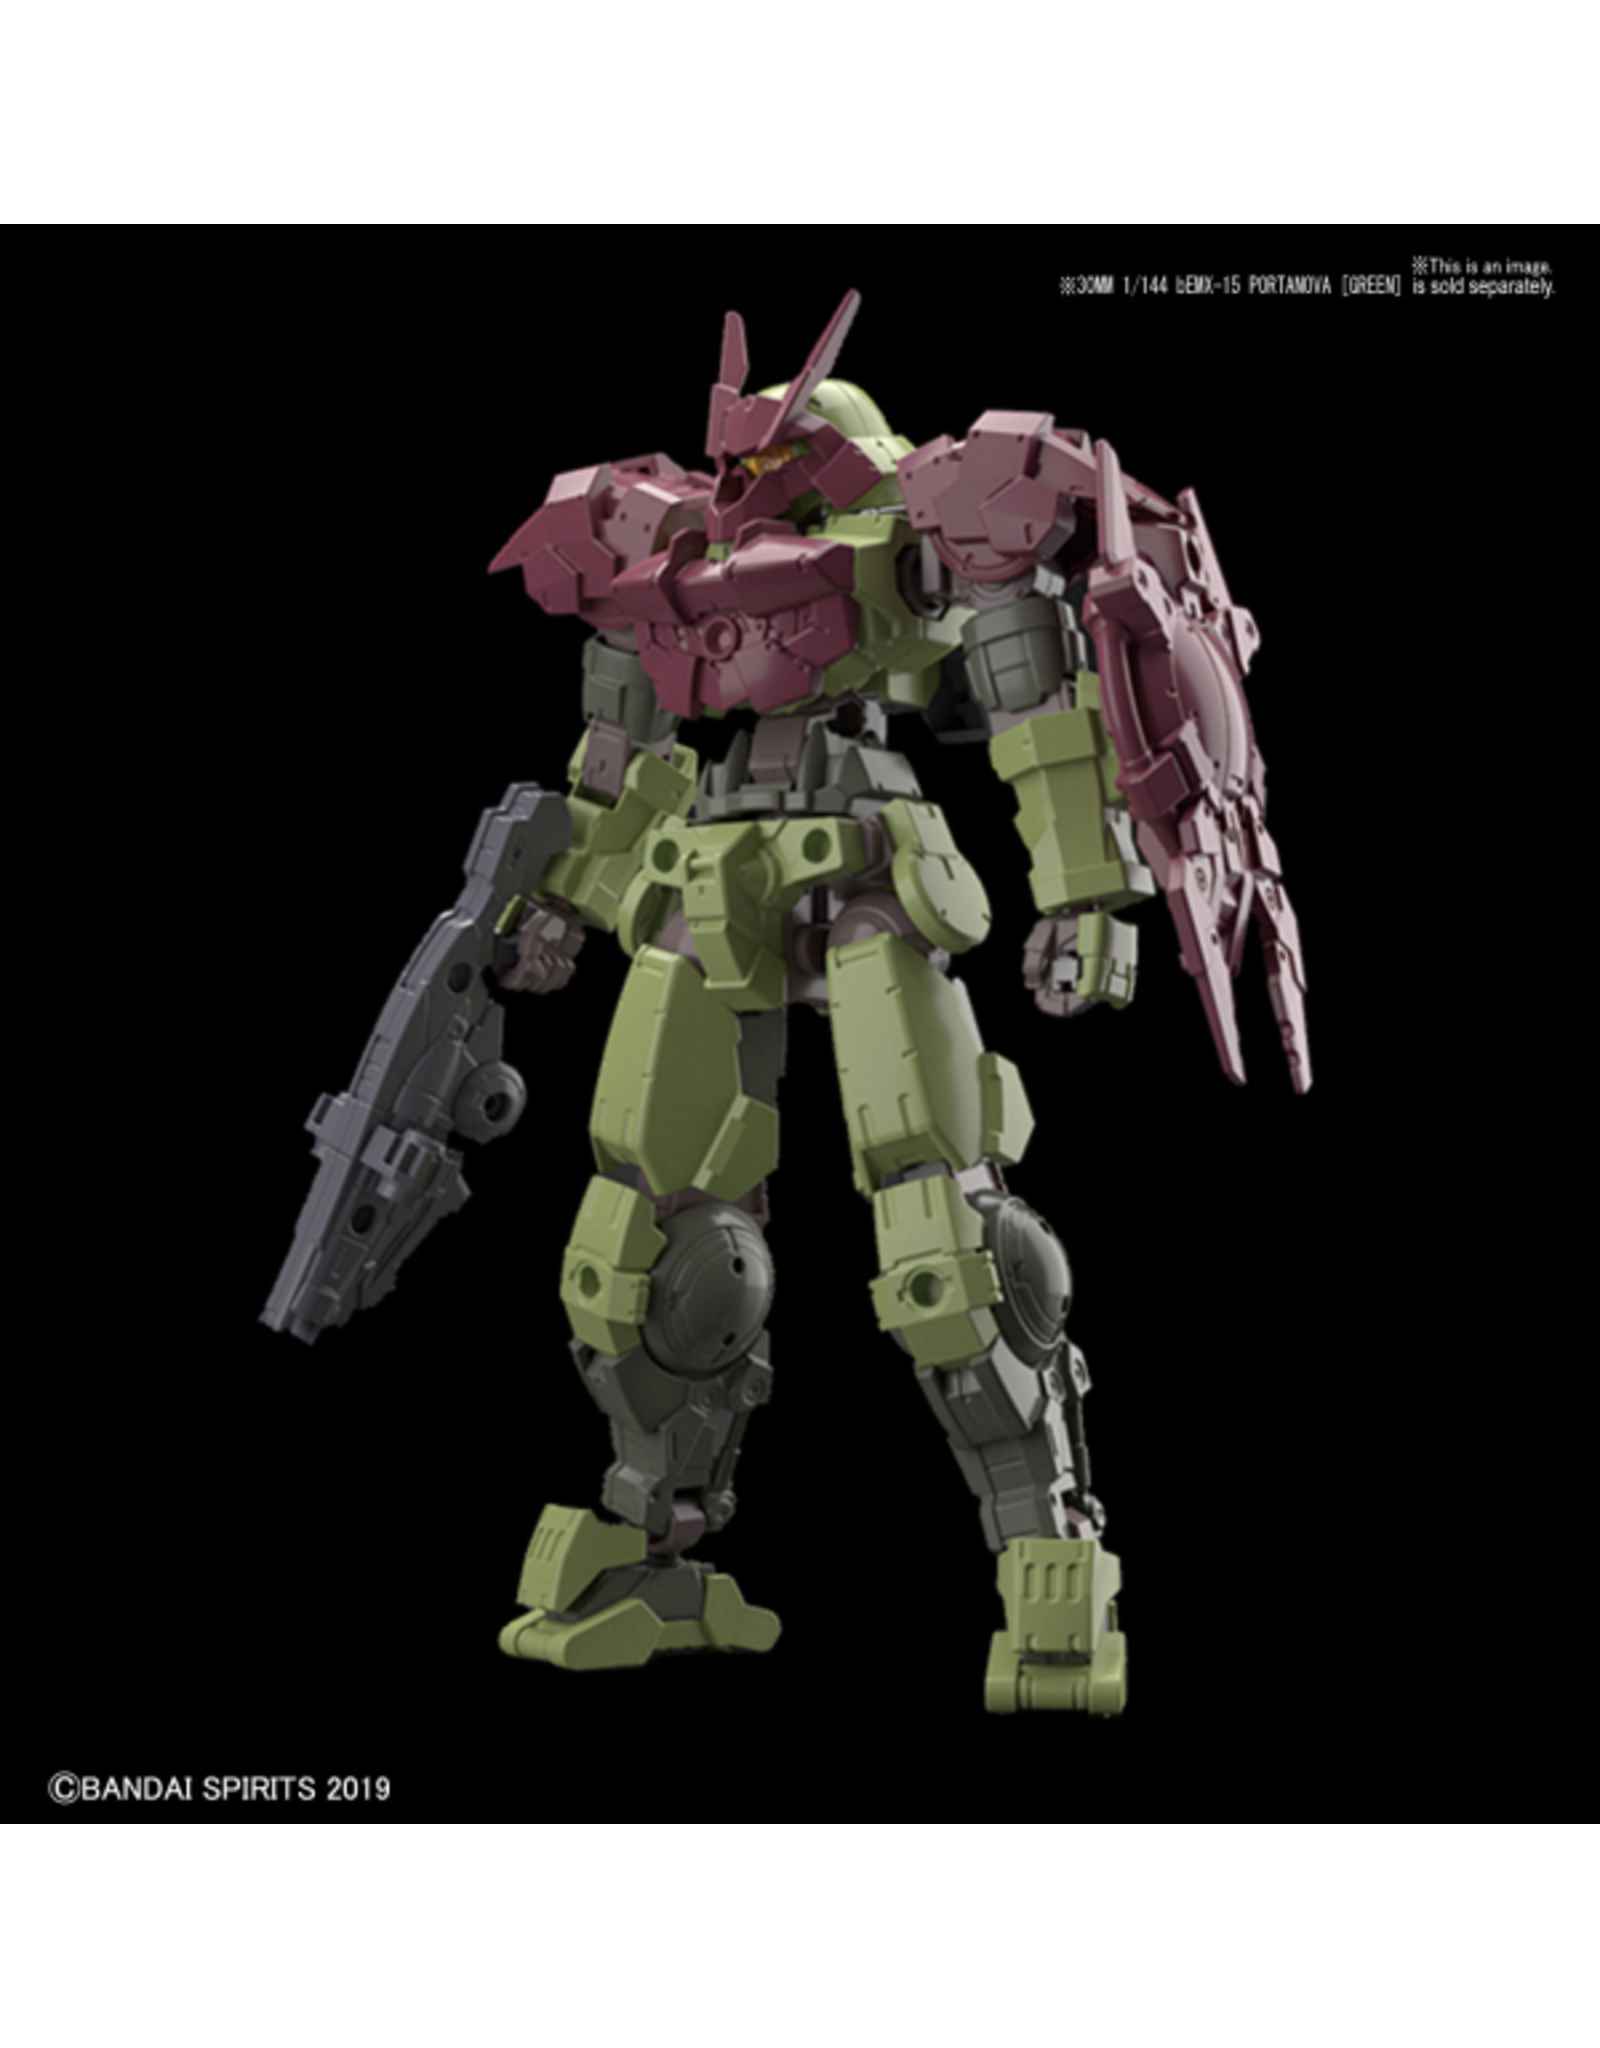 BANDAI 30MM 1/144 OPTION ARMOR FOR CLOSE FIGHTING [PORTANOVA EXCLUSIVE/DARDK RED]